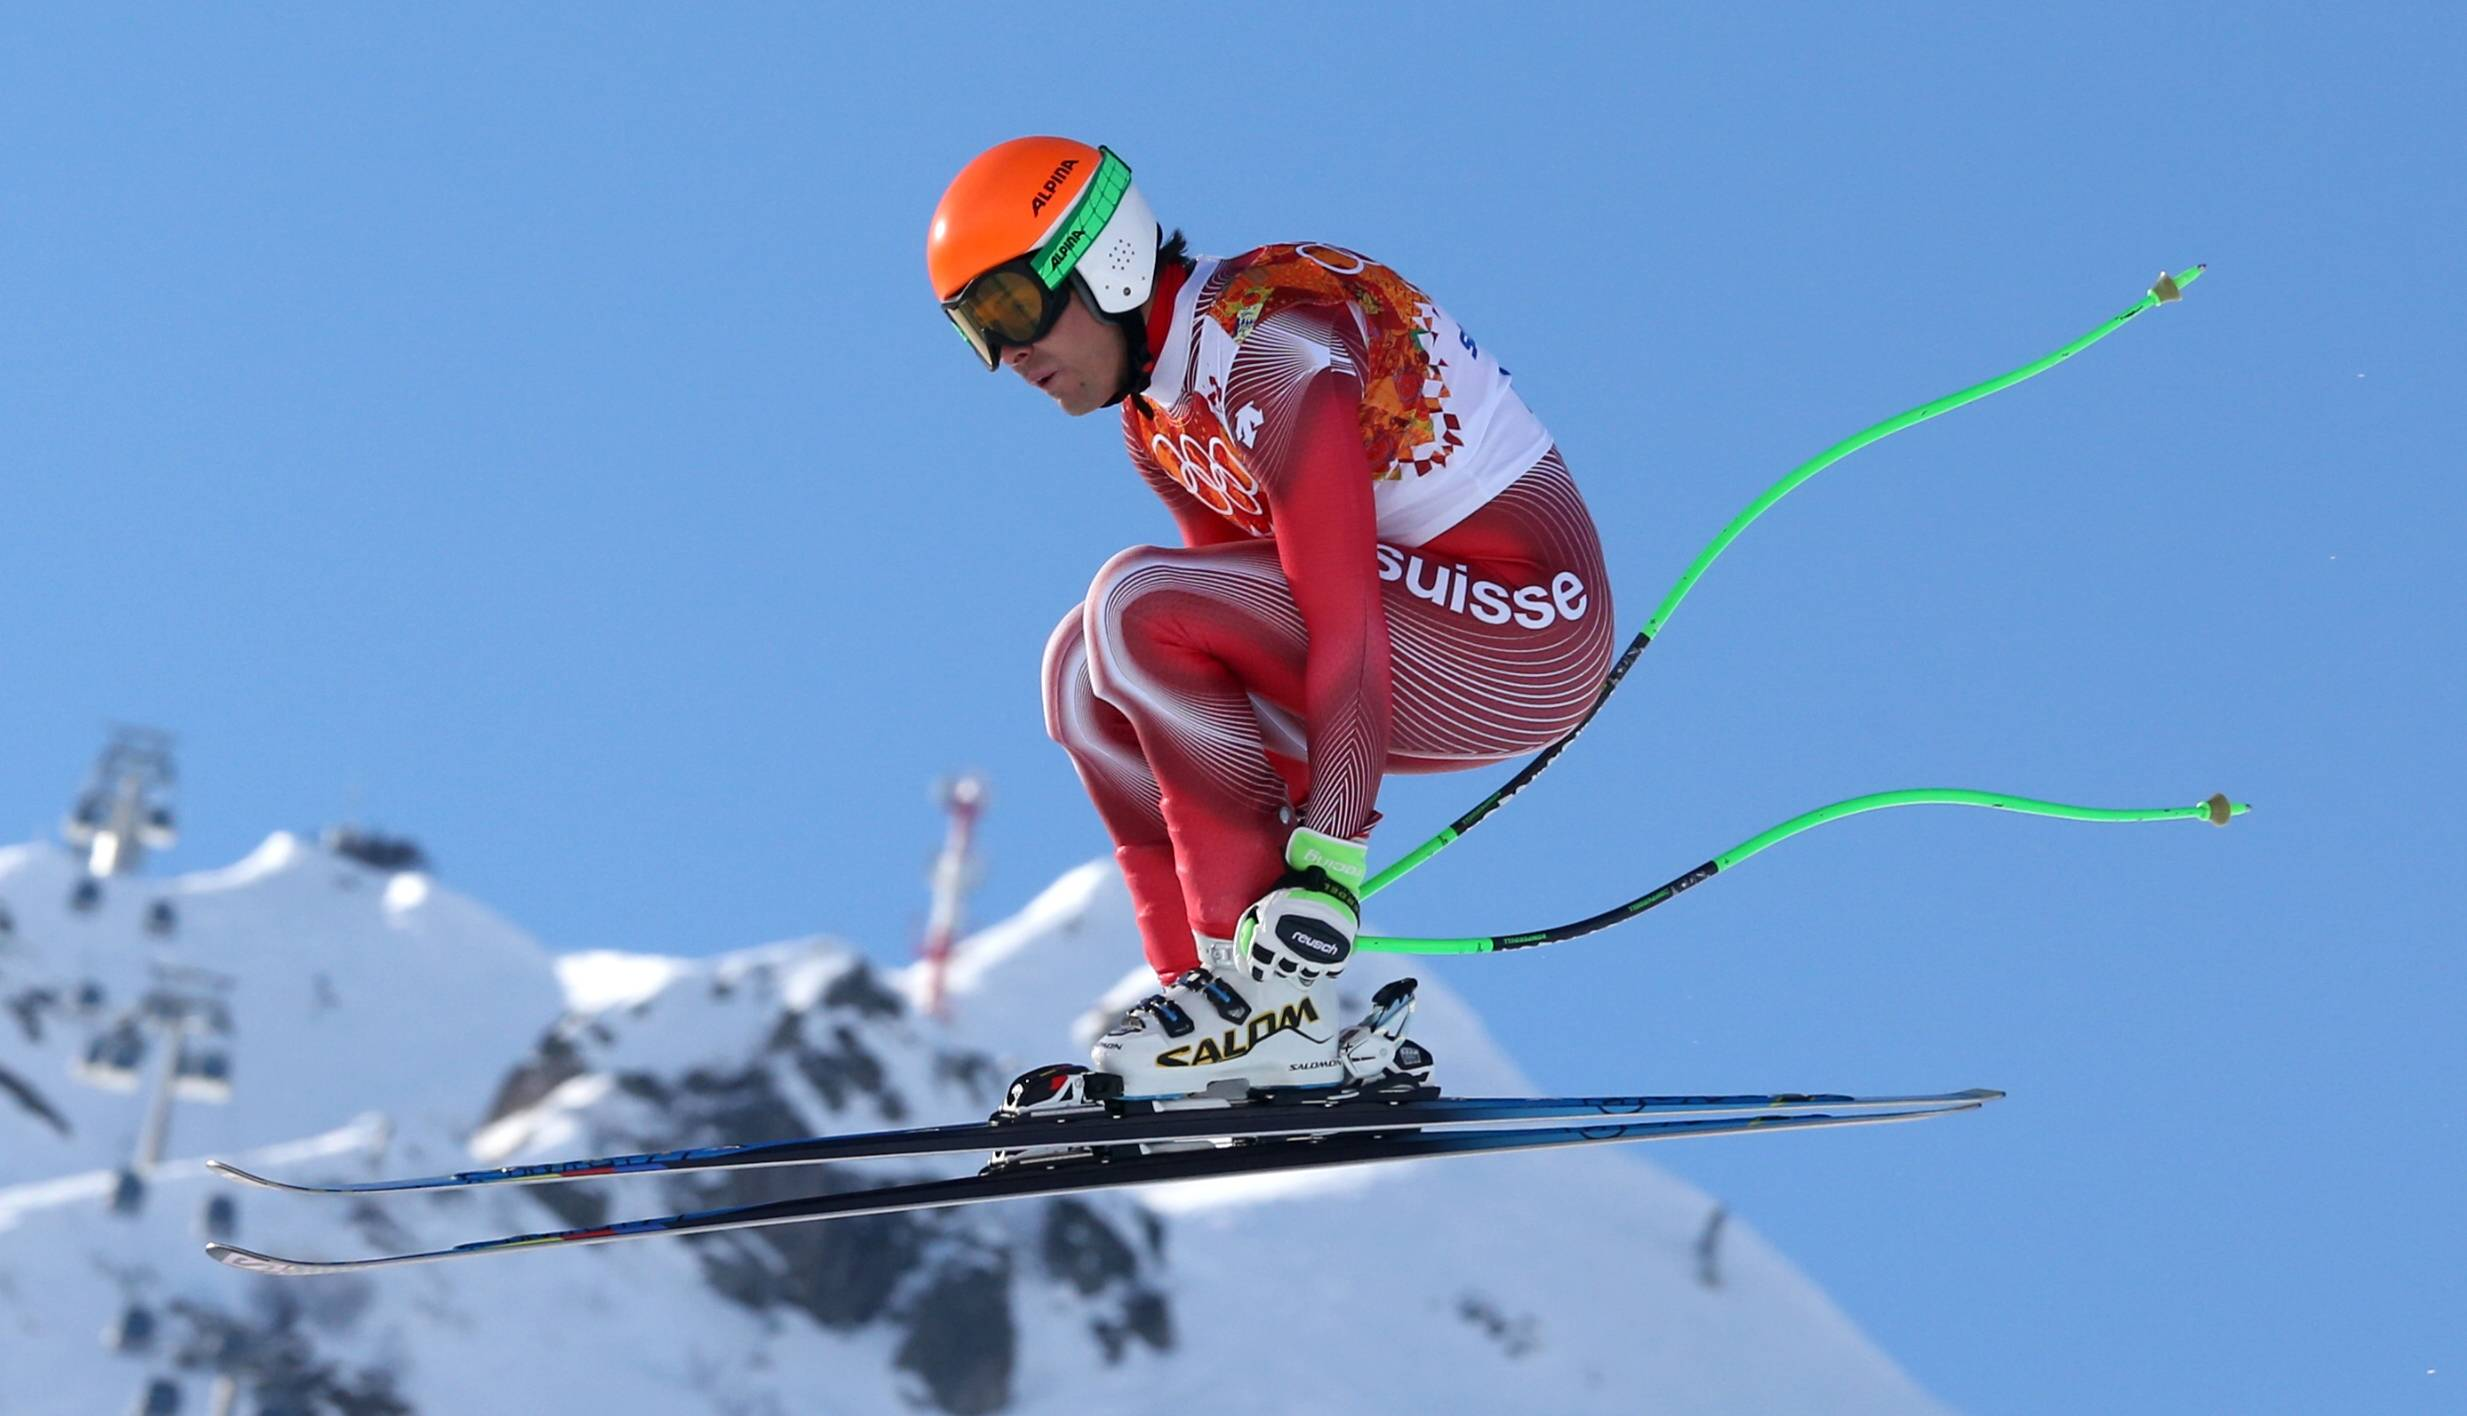 Switzerland's Sandro Viletta jumps during the downhill portion of the men's supercombined at the Sochi 2014 Winter Olympics, Friday, Feb. 14, 2014, in Krasnaya Polyana, Russia. He won the gold medal.